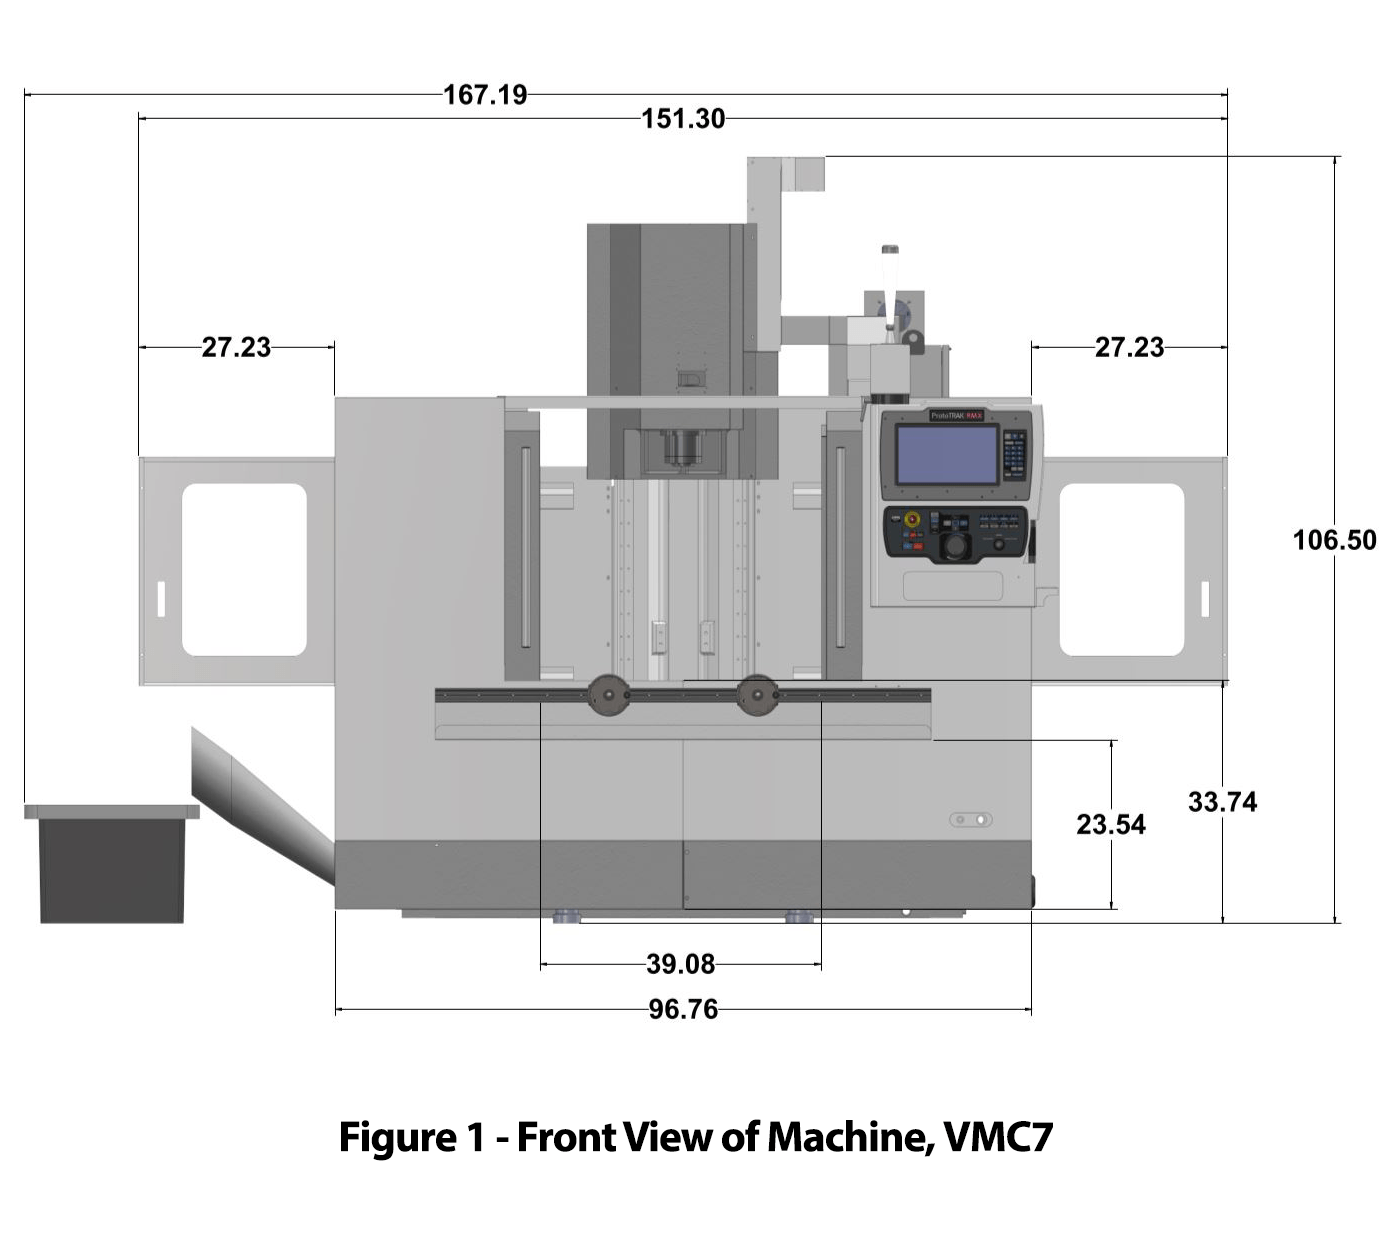 TRAK VMC7 Vertical Machining Center - Figure 1